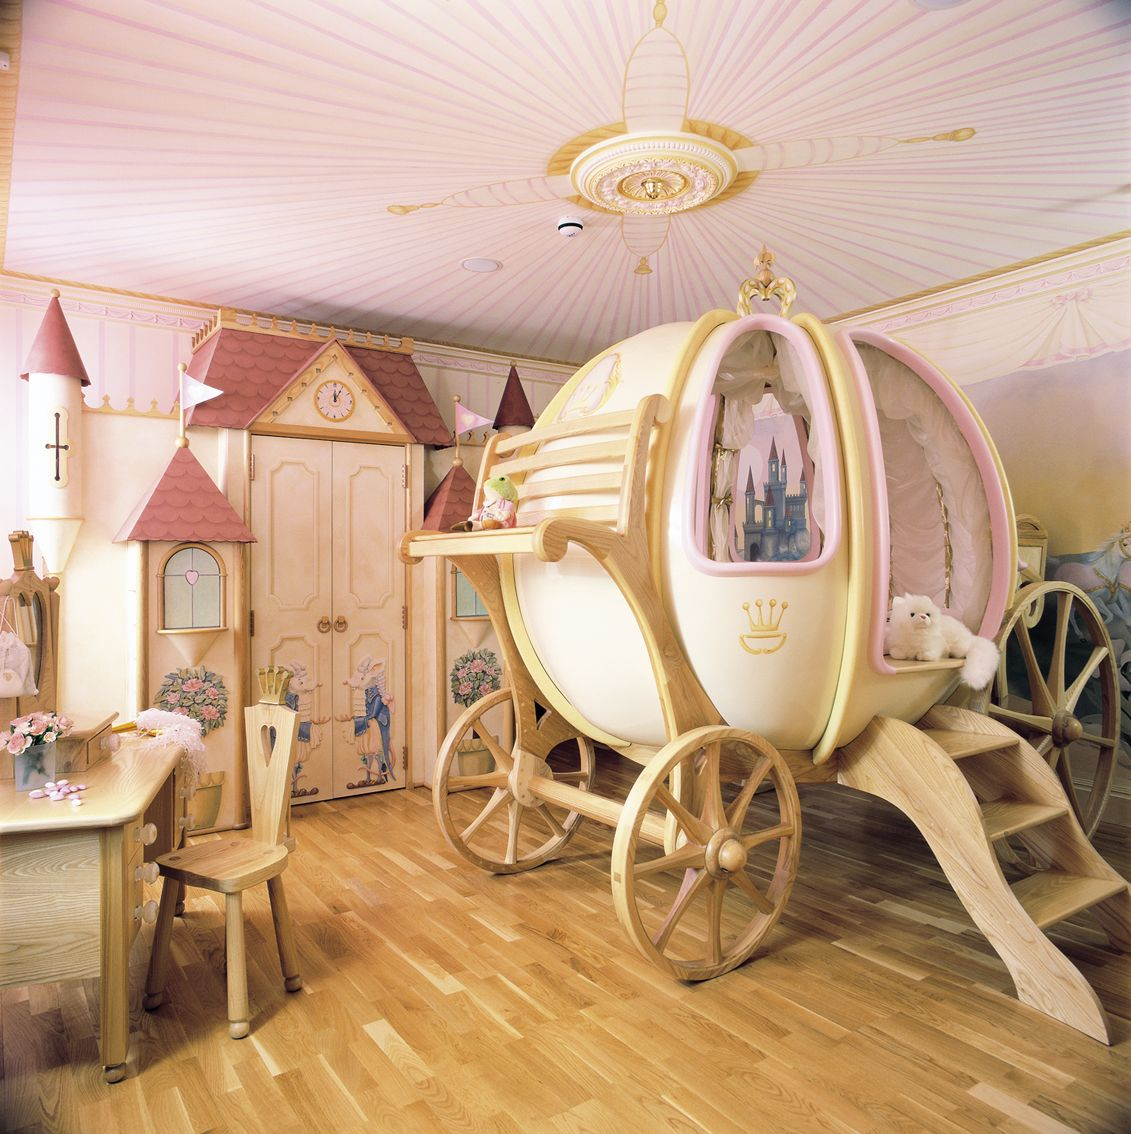 Bedroom furniture for girls castle - Cinderella Coach Princess Bedroom With Castle Wardrobe